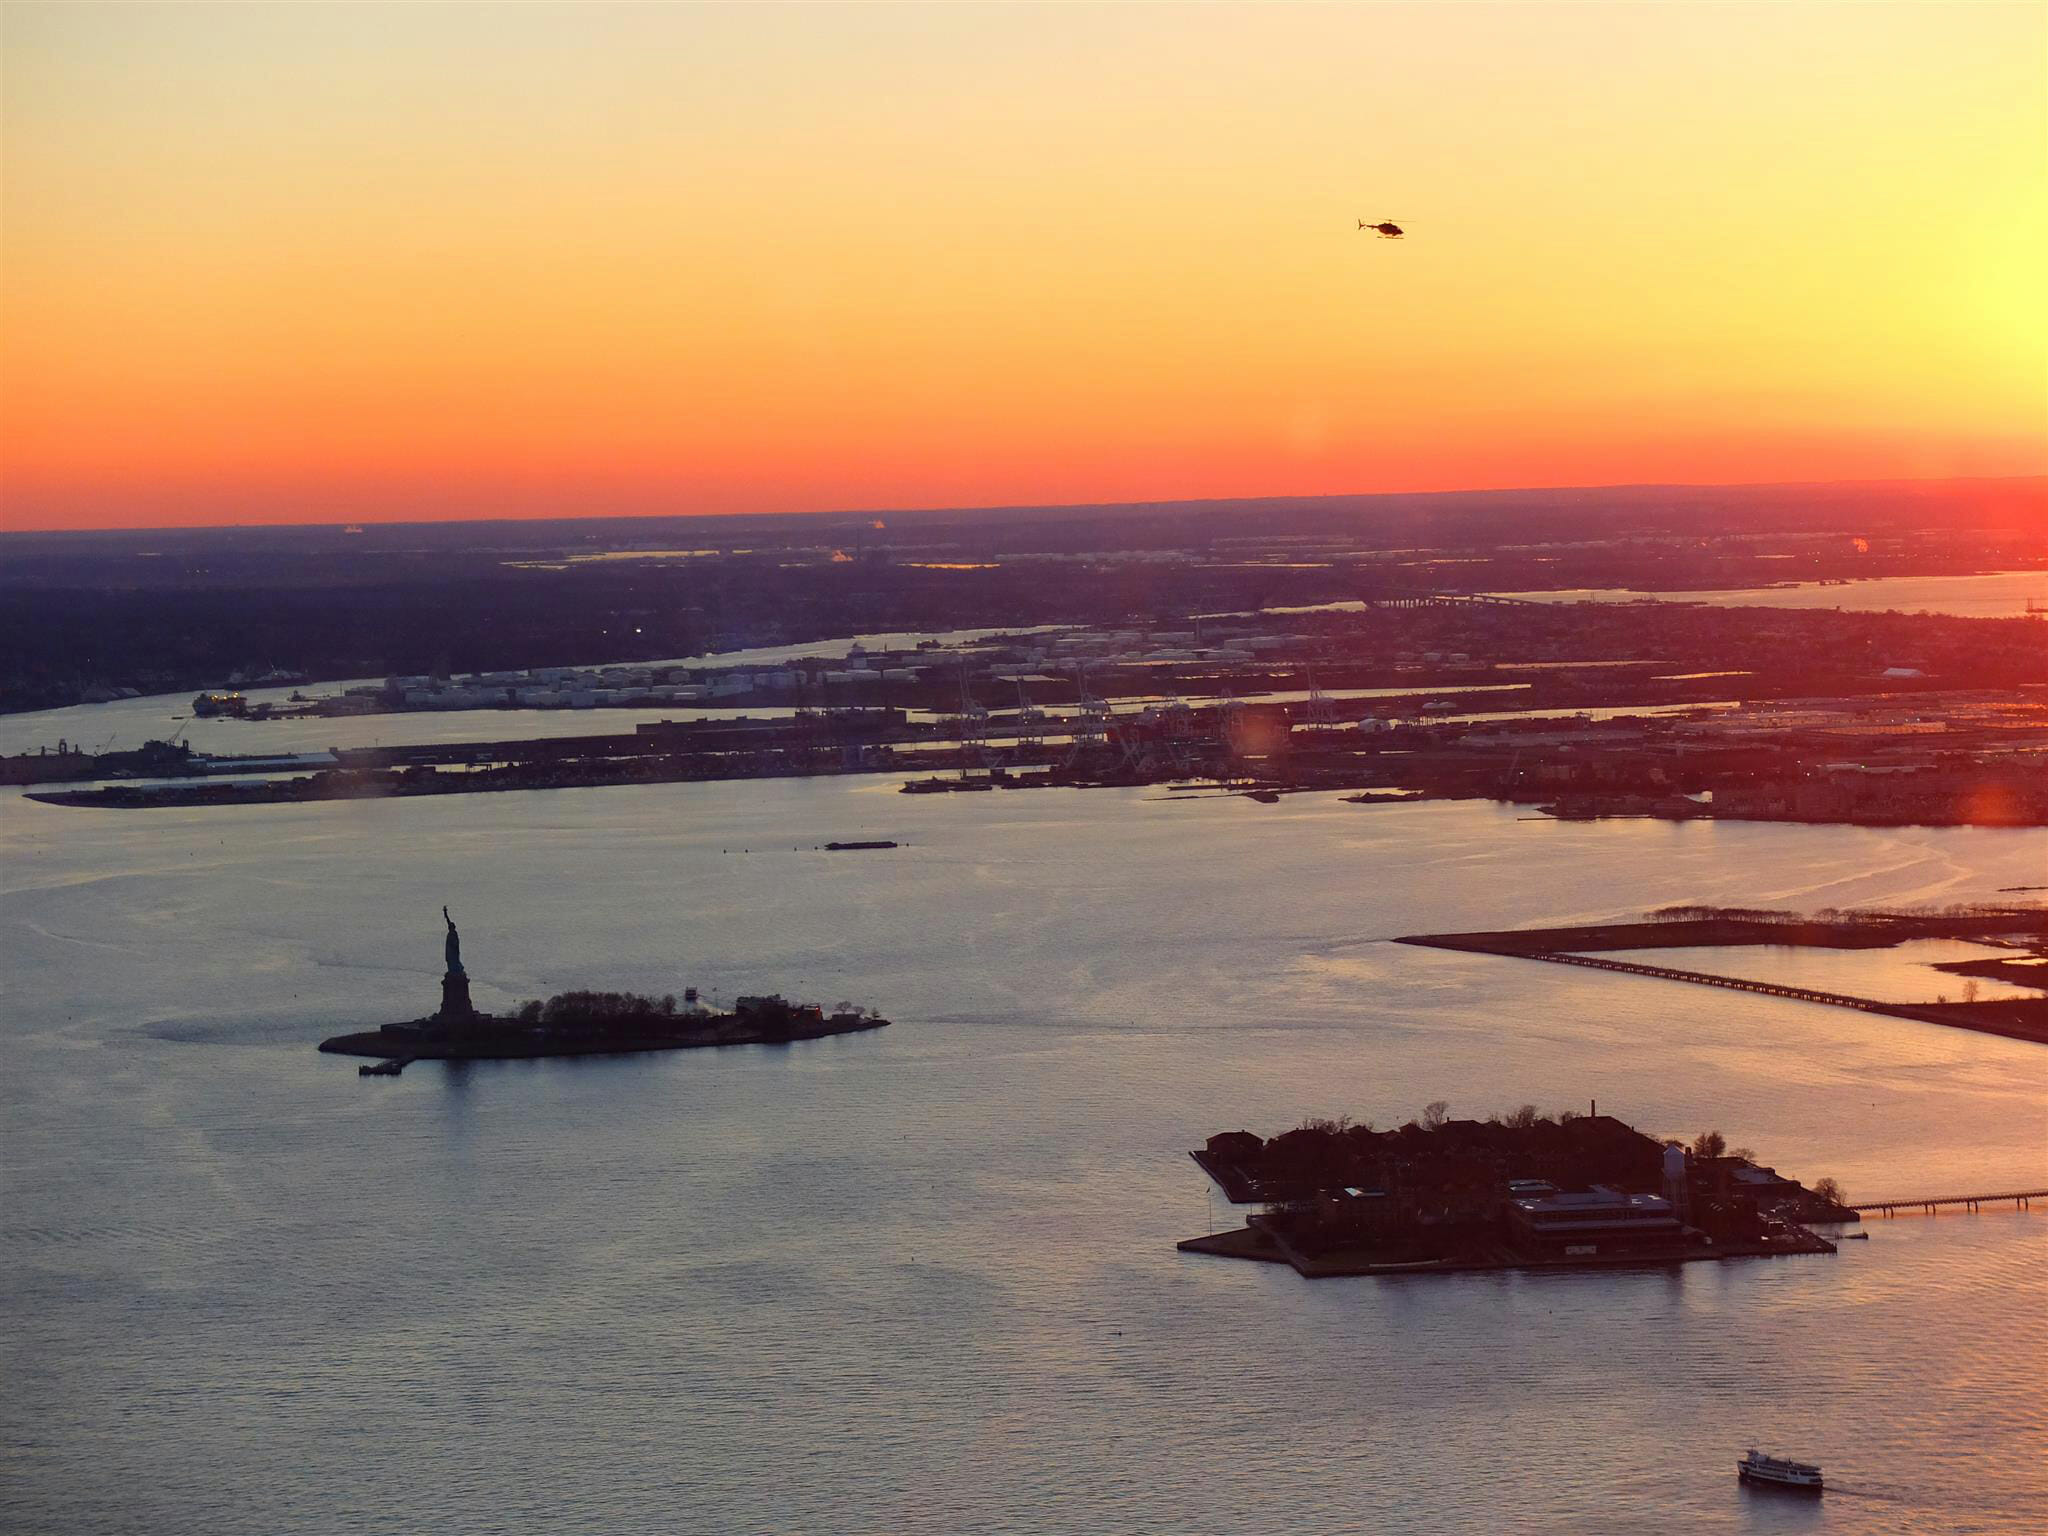 View of Statue of Liberty Sunset High Quality Wallpaper